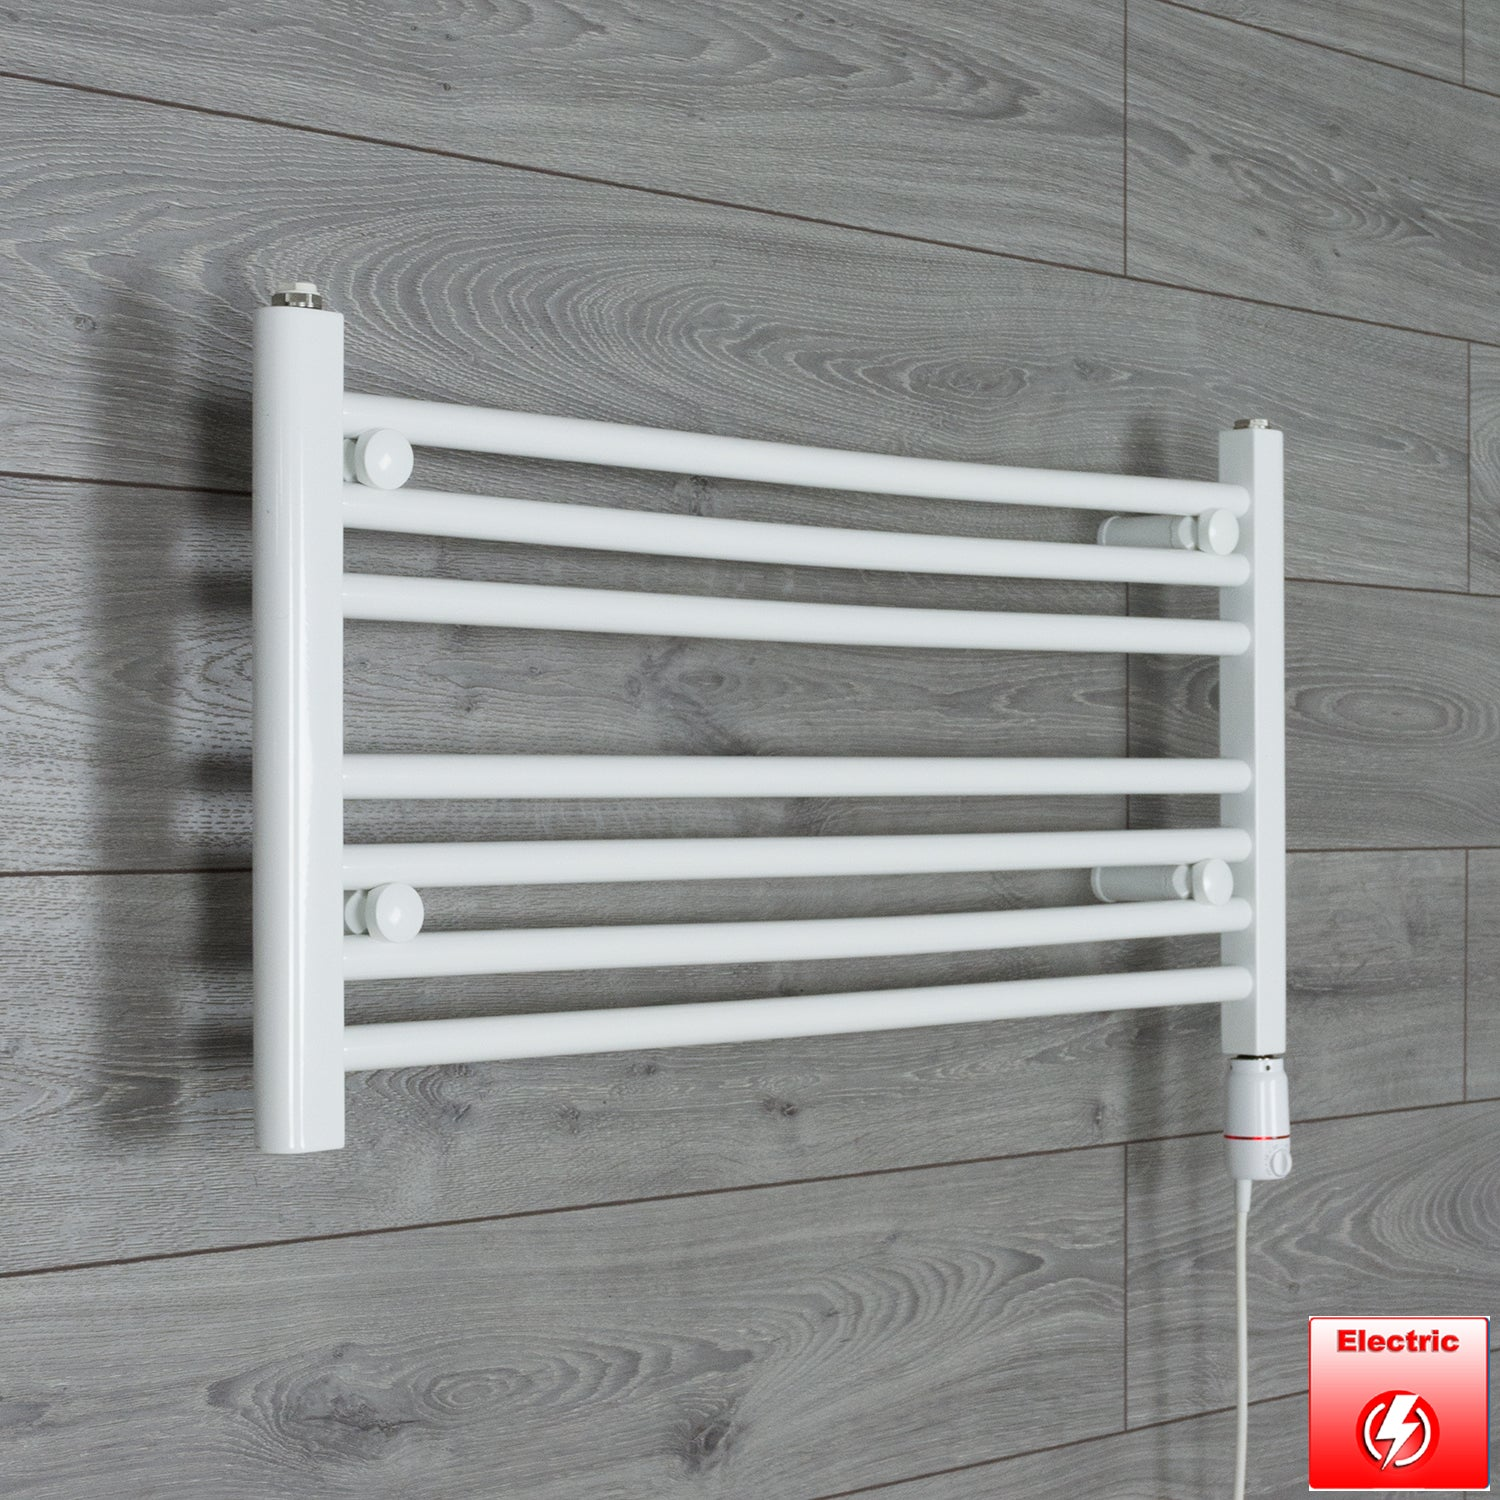 900mm Wide 400mm High Pre-Filled White Electric Towel Rail Radiator With Thermostatic GT Element